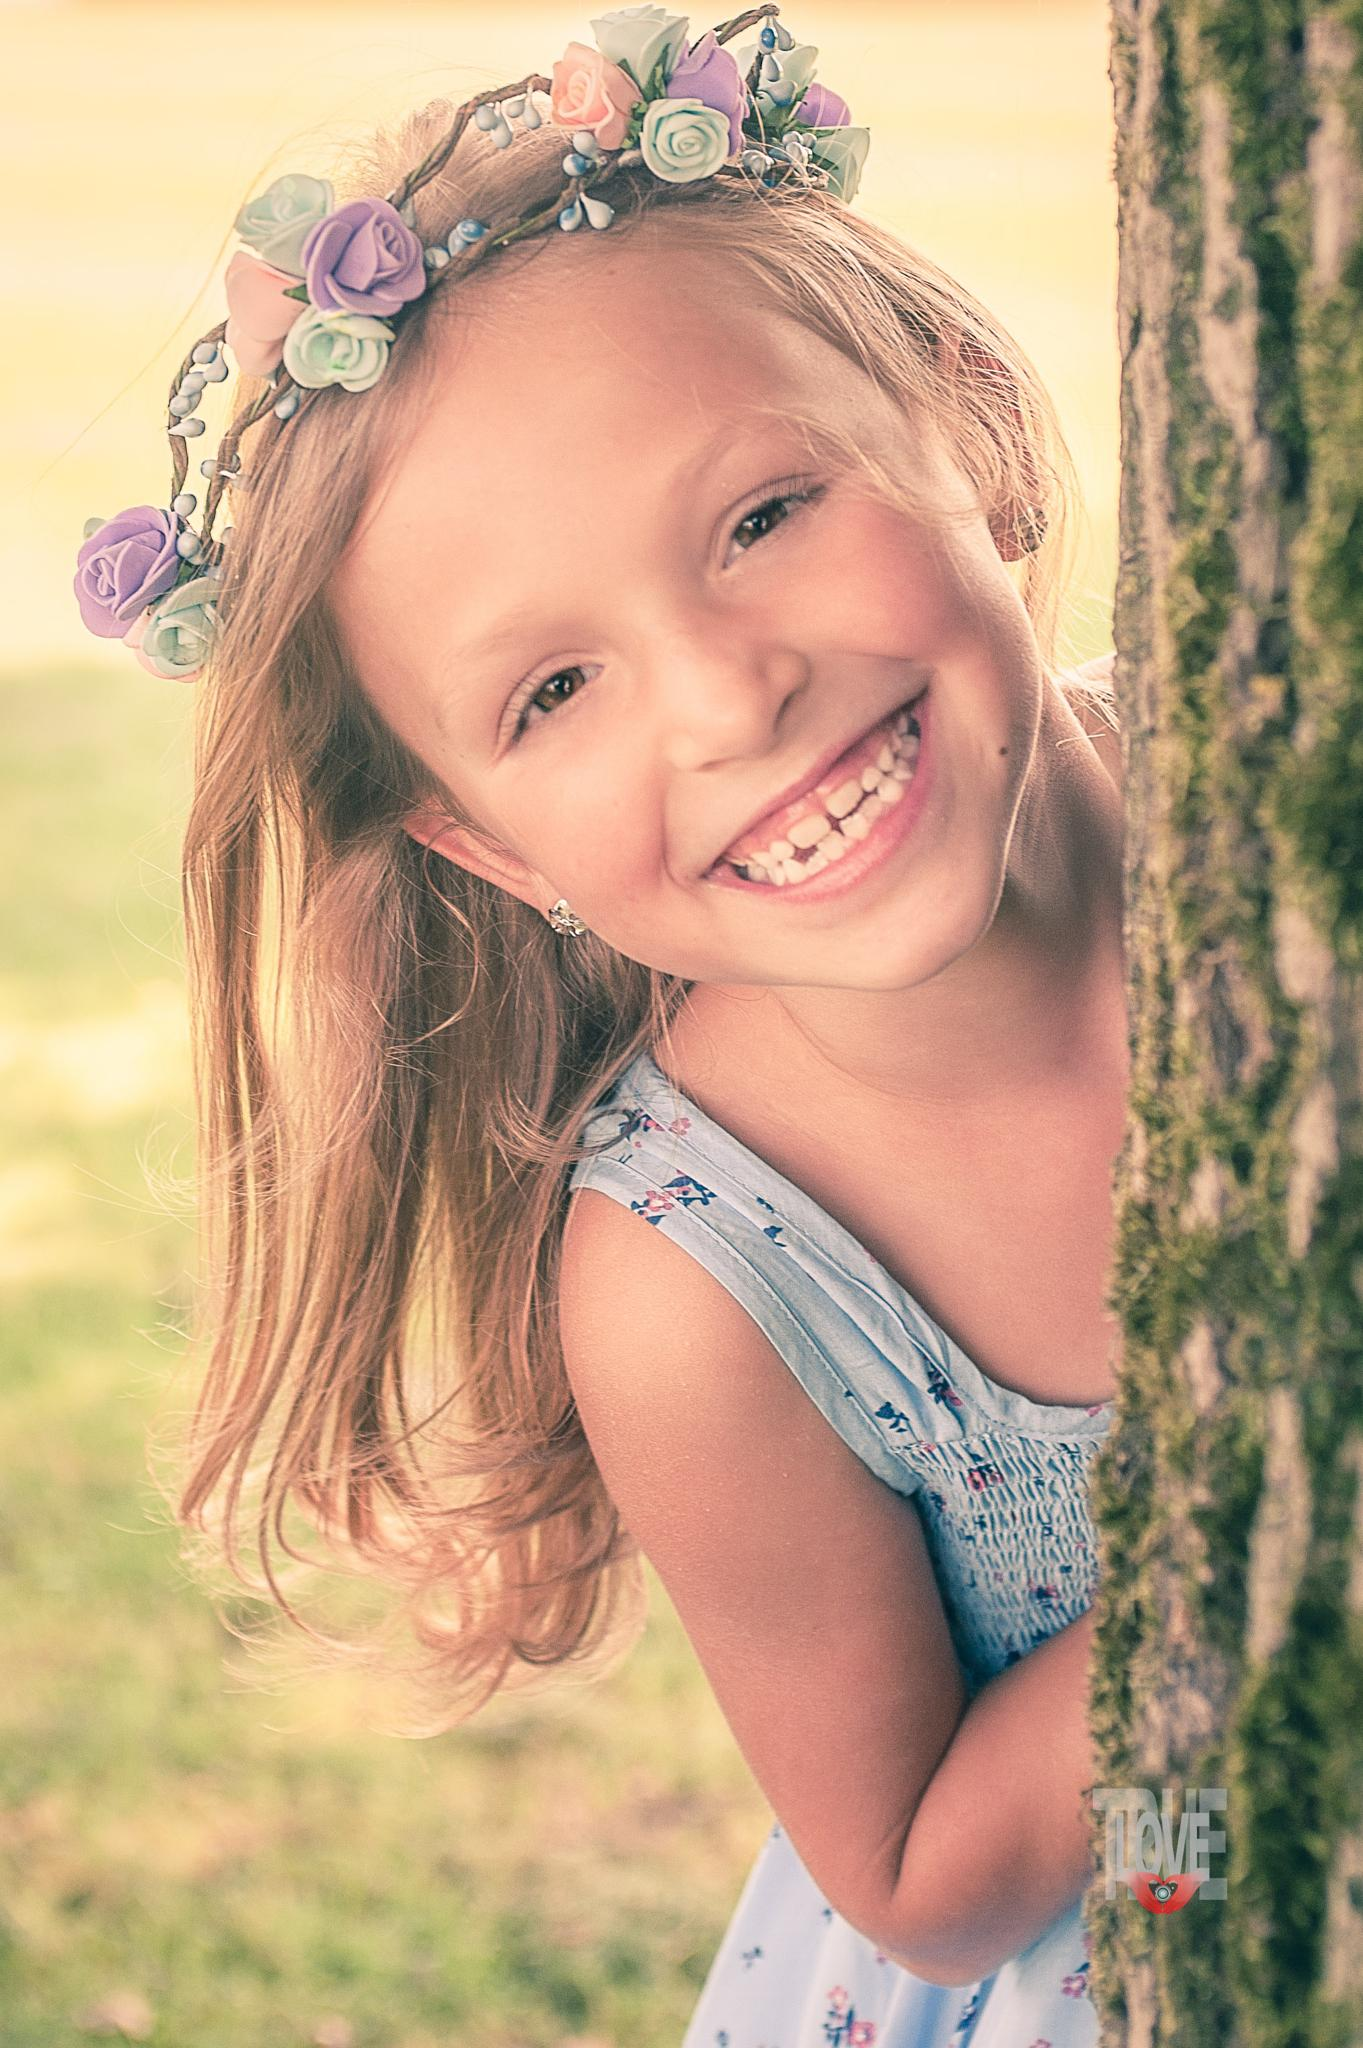 What a smile can do  by truelovefotografie